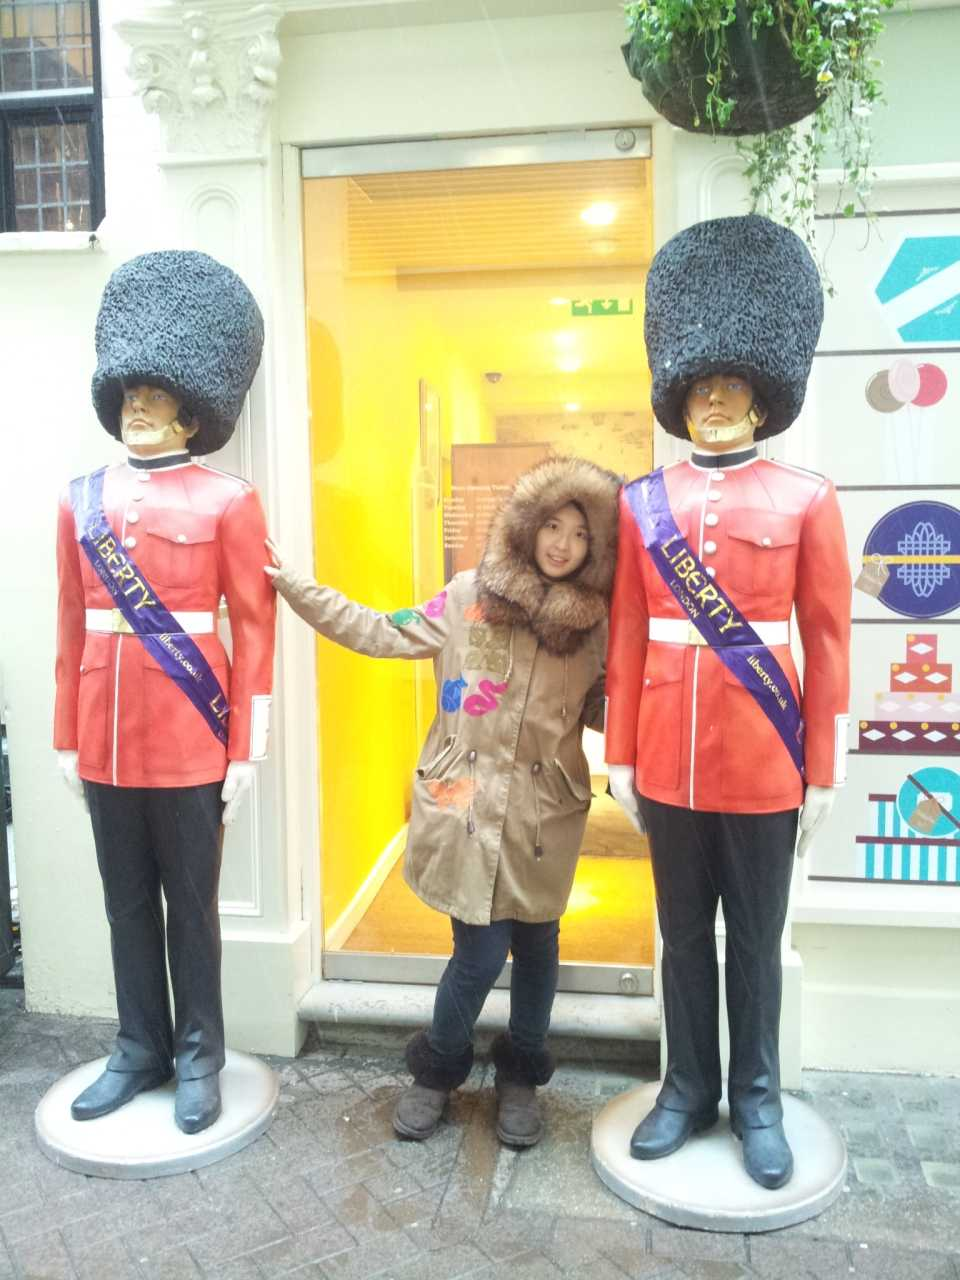 Tourist poses with two guard statues outside of a tea shop.